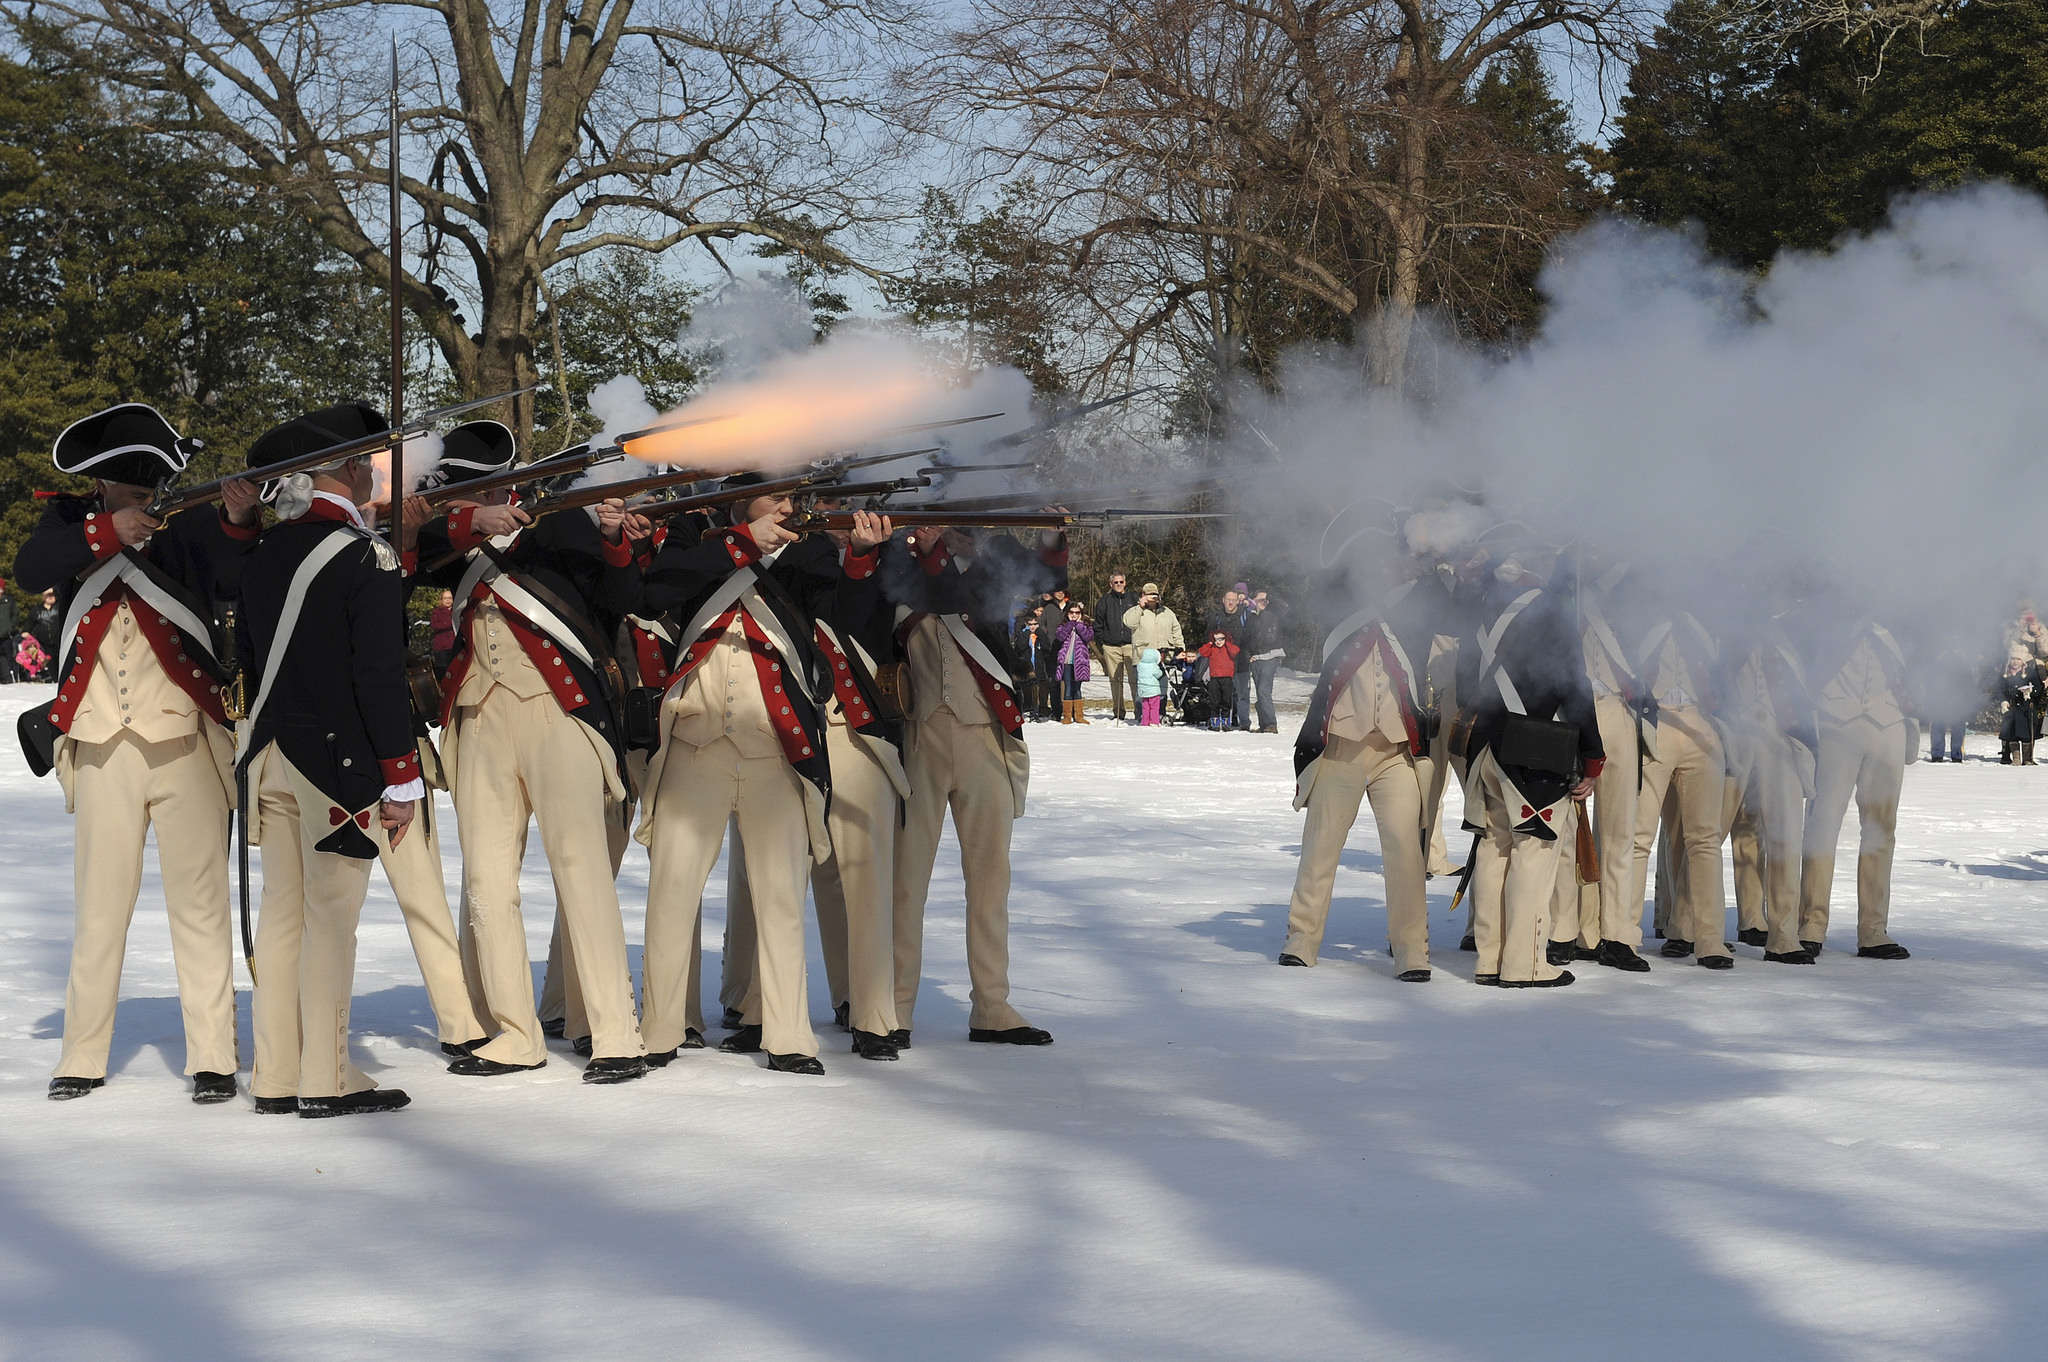 Winter Day Trips Near Falls Church President's Day at Mount Vernon| Winter Day Trips Near Falls Church Worth Taking | West Broad